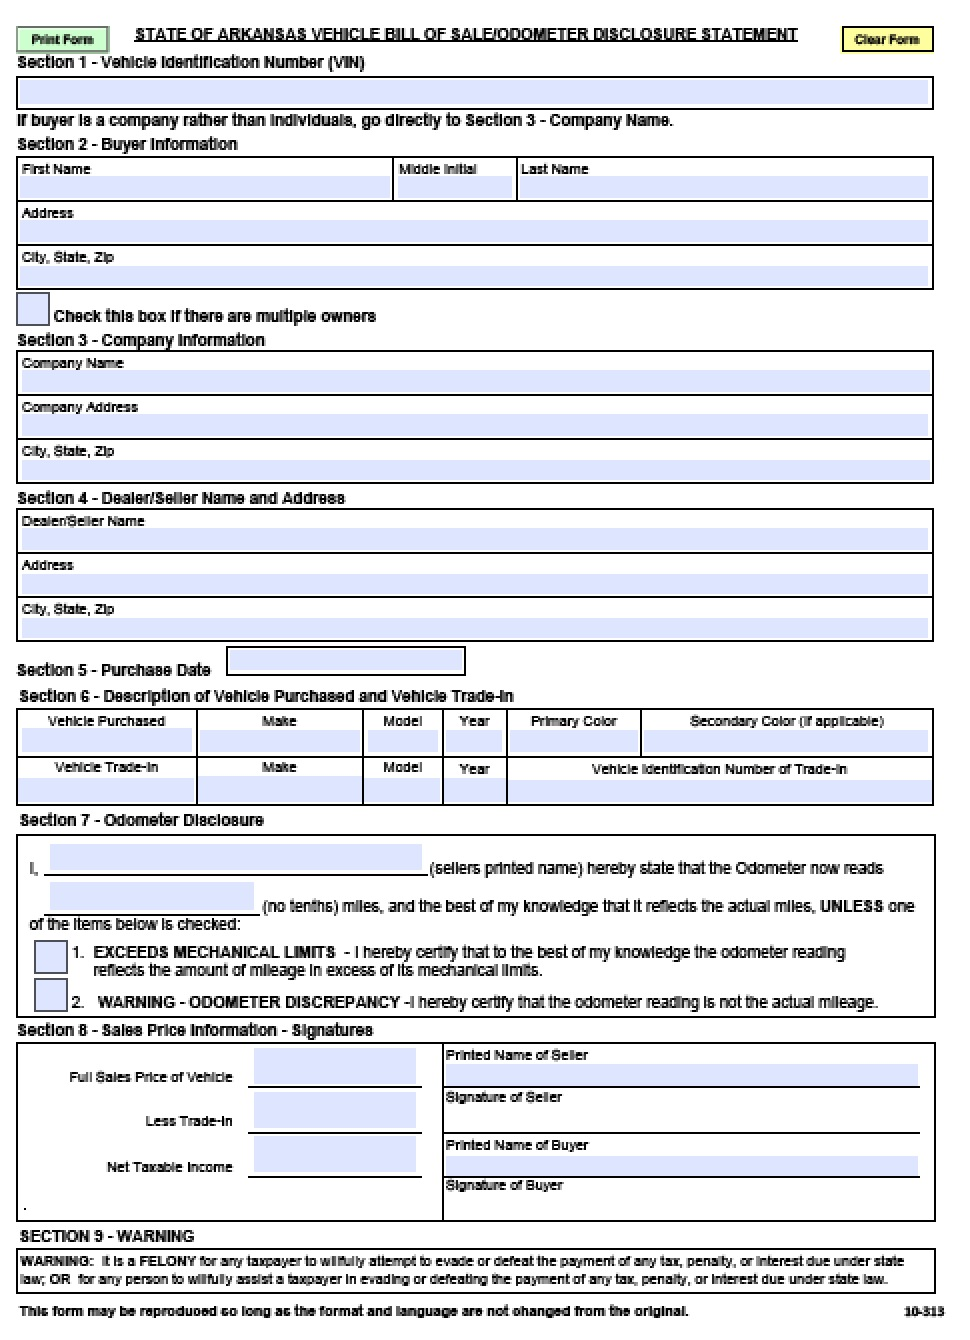 free arkansas motor vehicle commission bill of sale form pdf